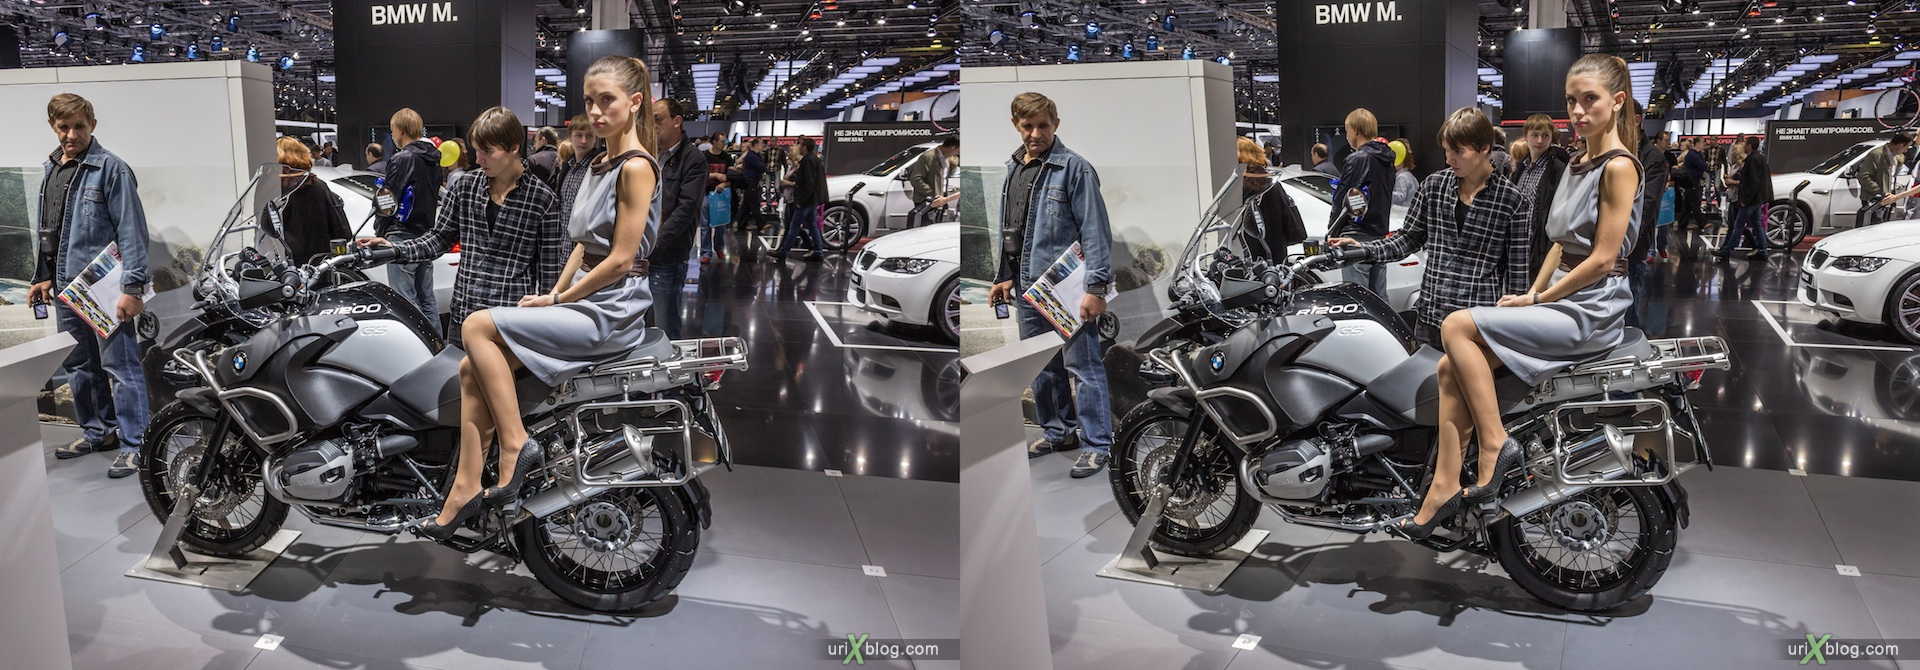 2012, BMW, bike, мотоцикл, Moscow International Automobile Salon, auto show, 3D, stereo pair, cross-eyed, crossview